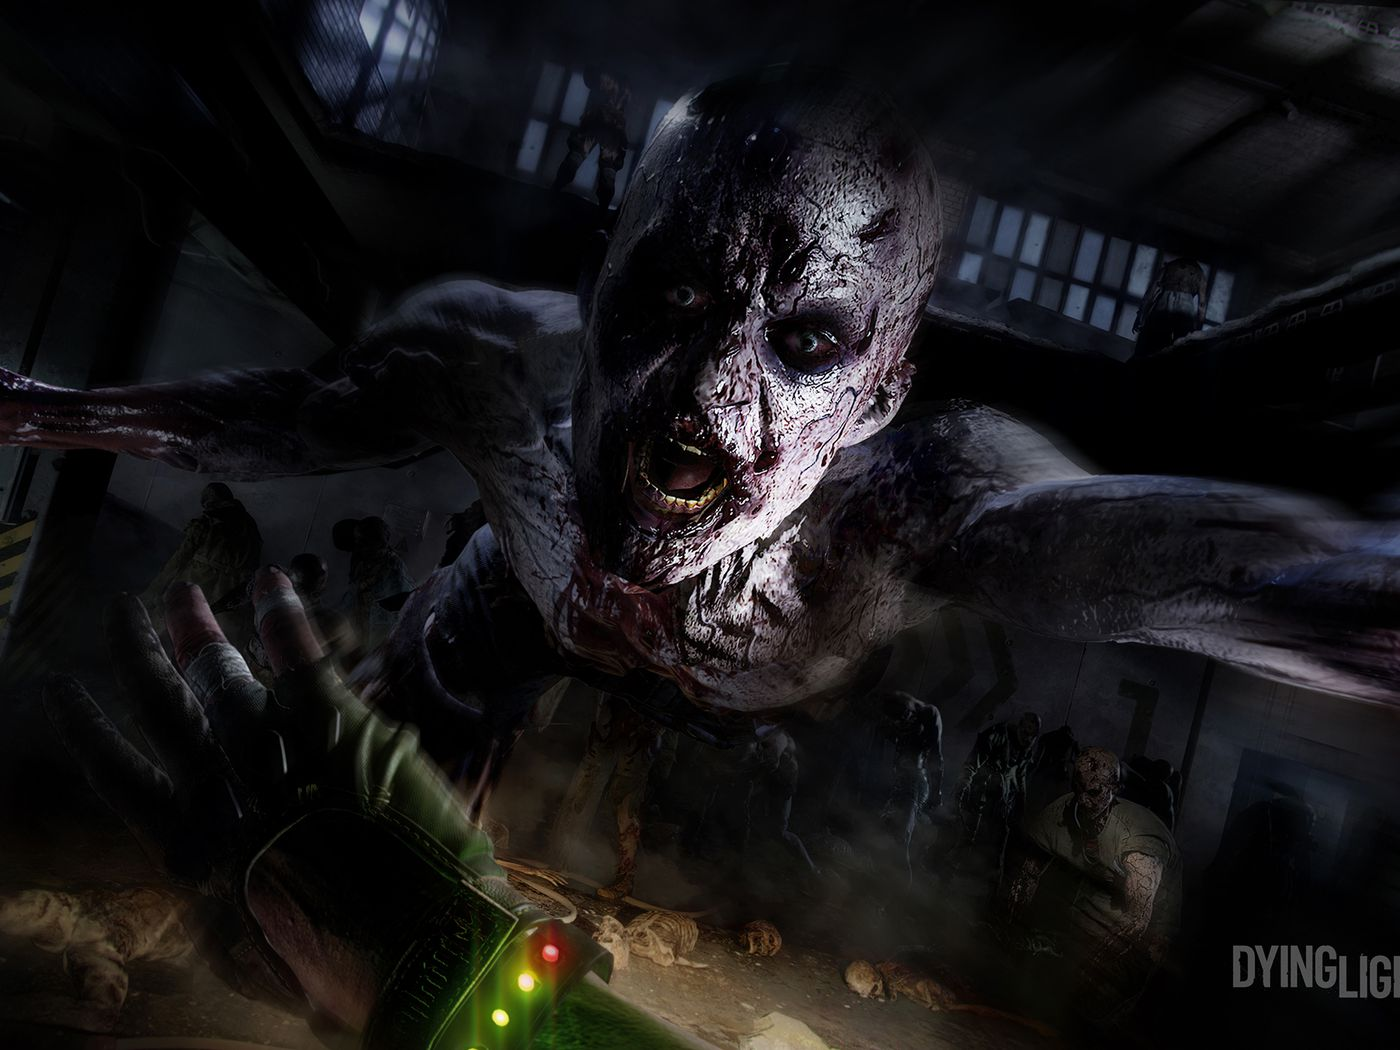 Dying Light 2 Gameplay Looks Good But The Narrative Feels Risky